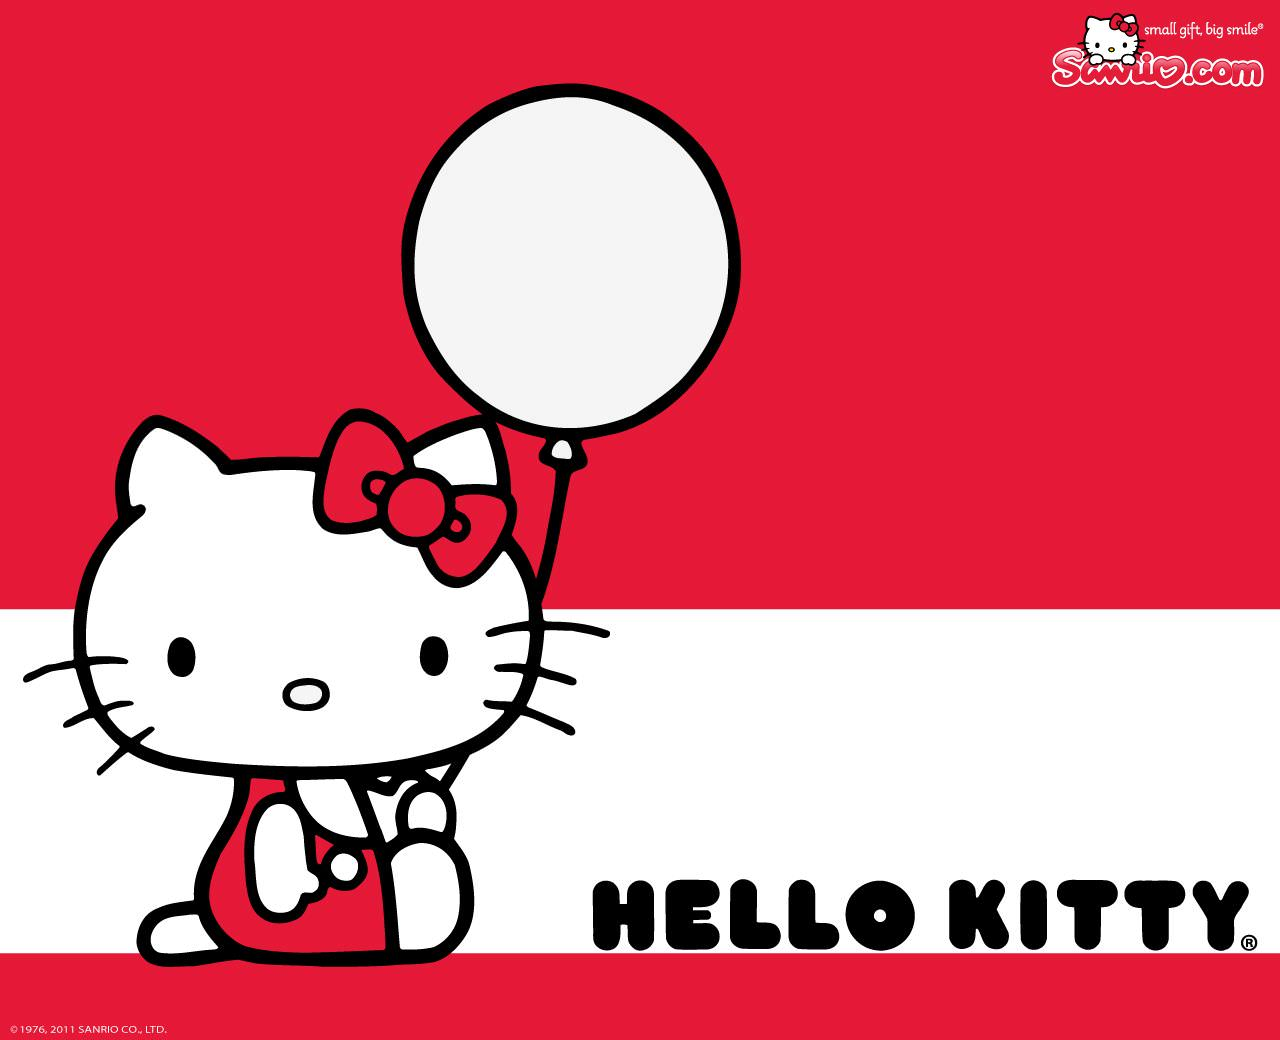 hello kitty with balloon background